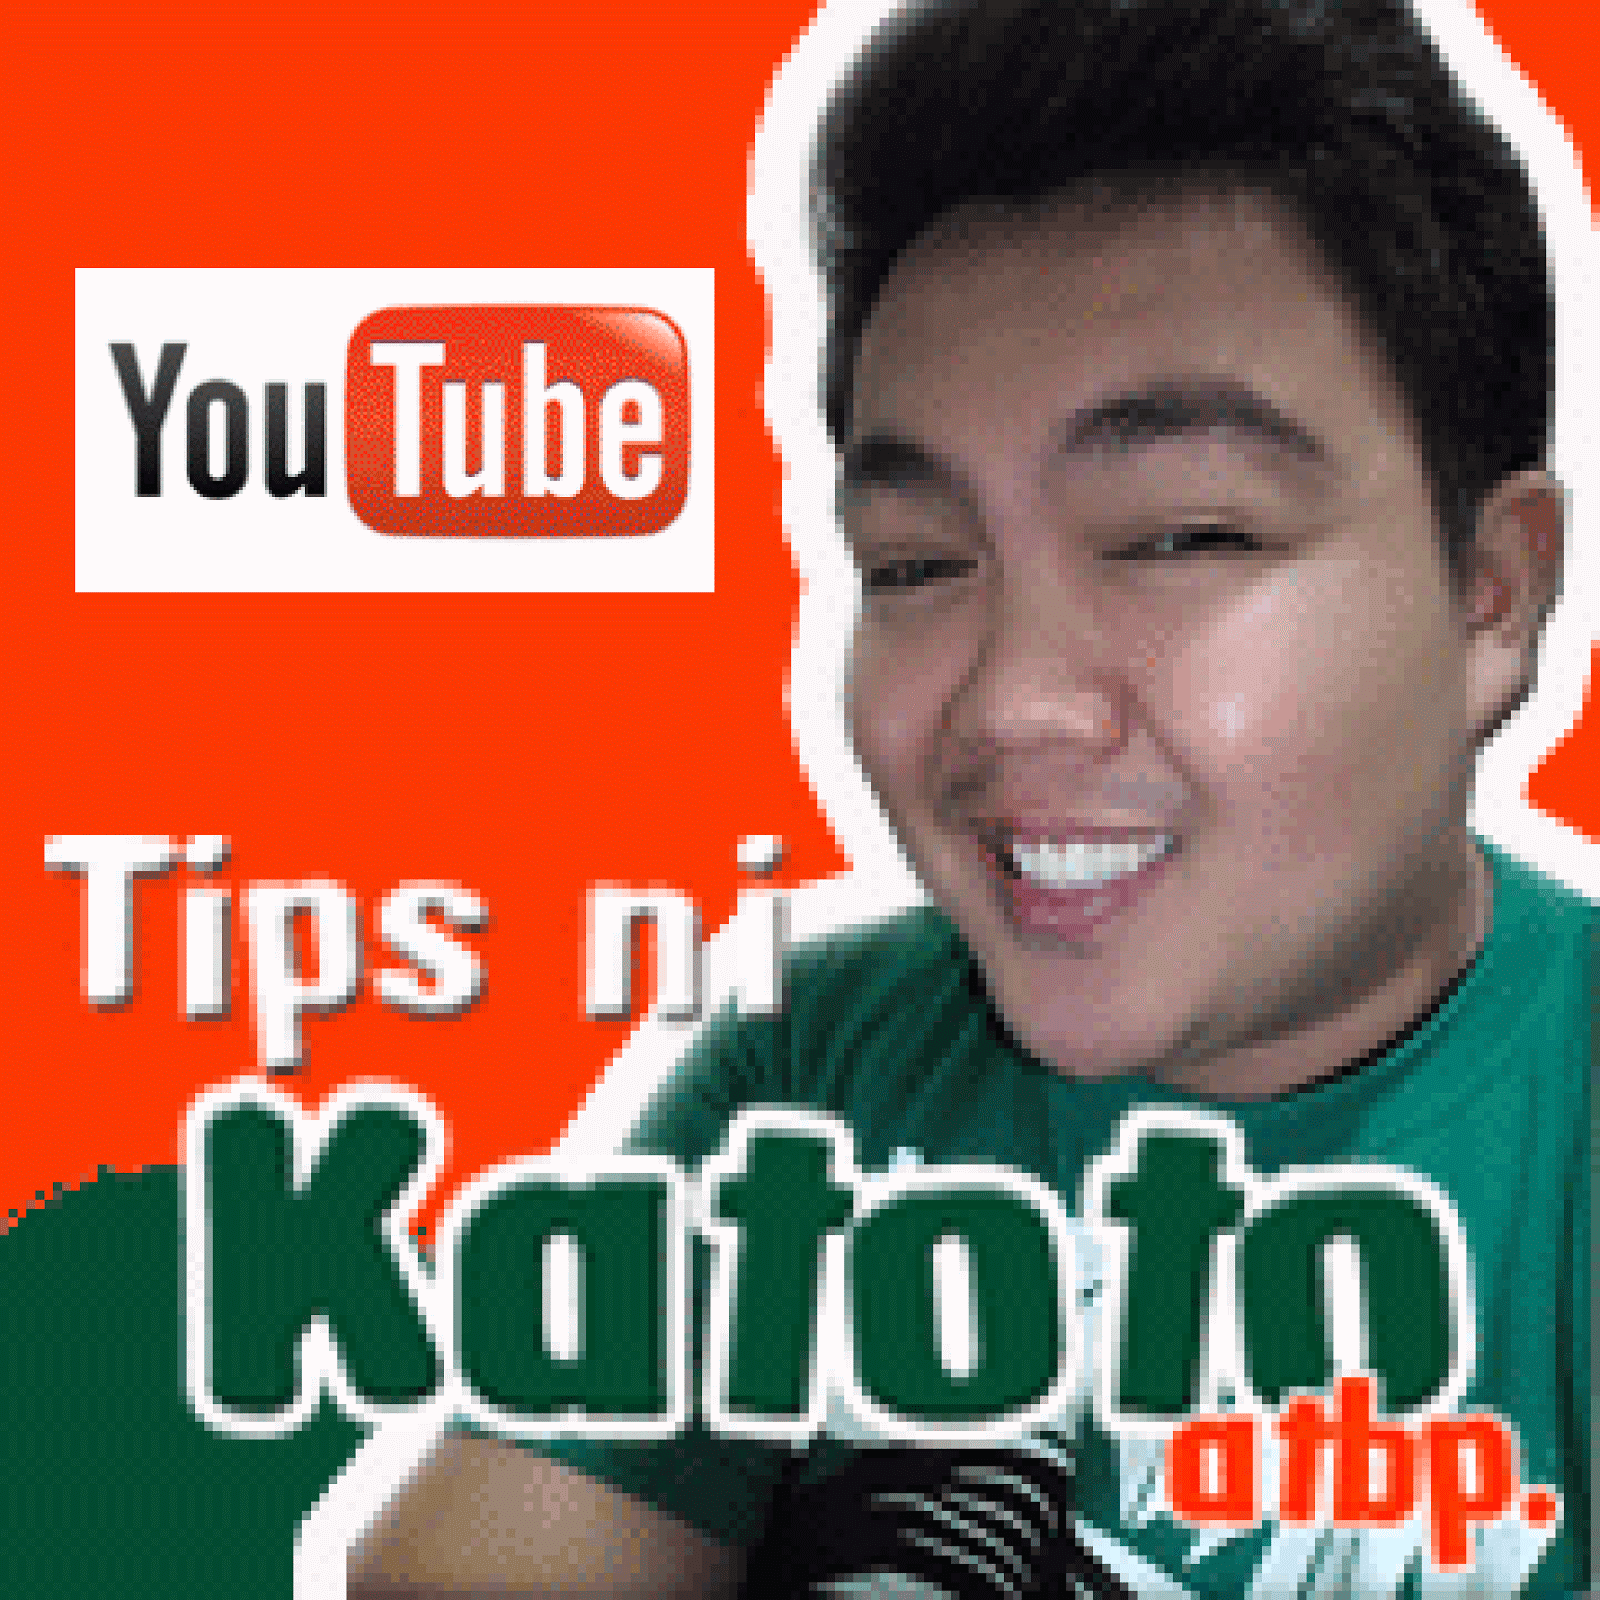 Tips ni Katoto on Youtube